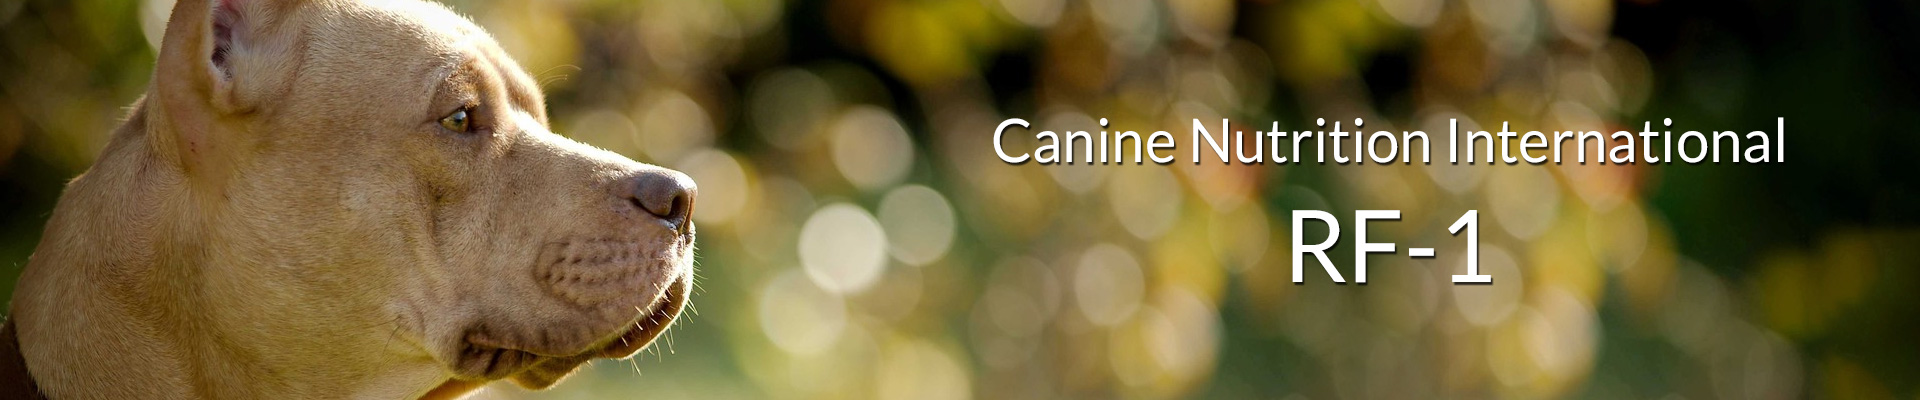 Canine Nutrition International